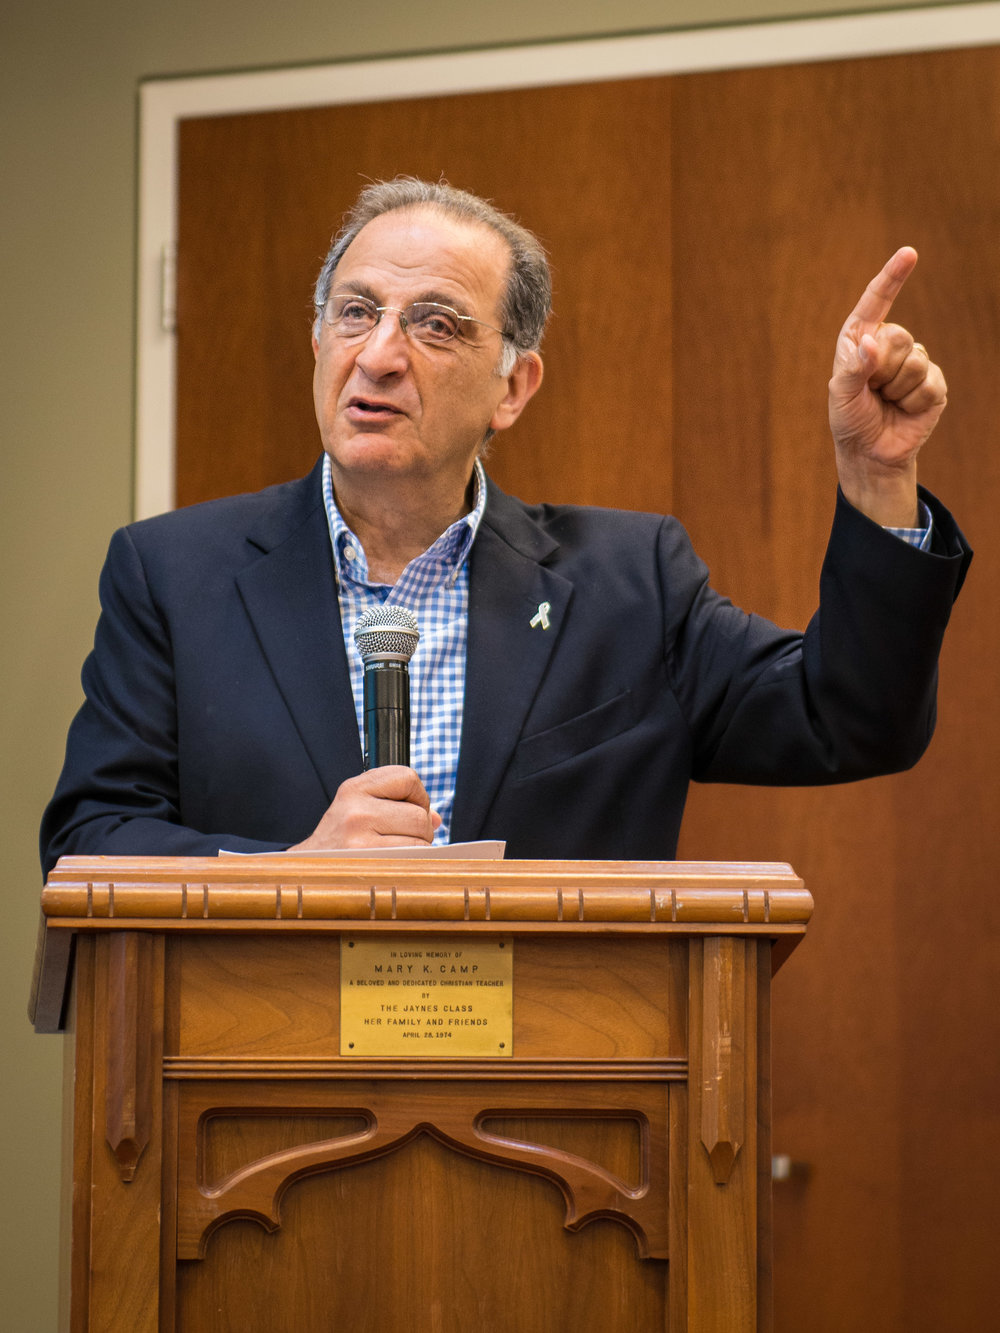 Dr. Jim Zogby, President and co-founder of the Arab American Institute